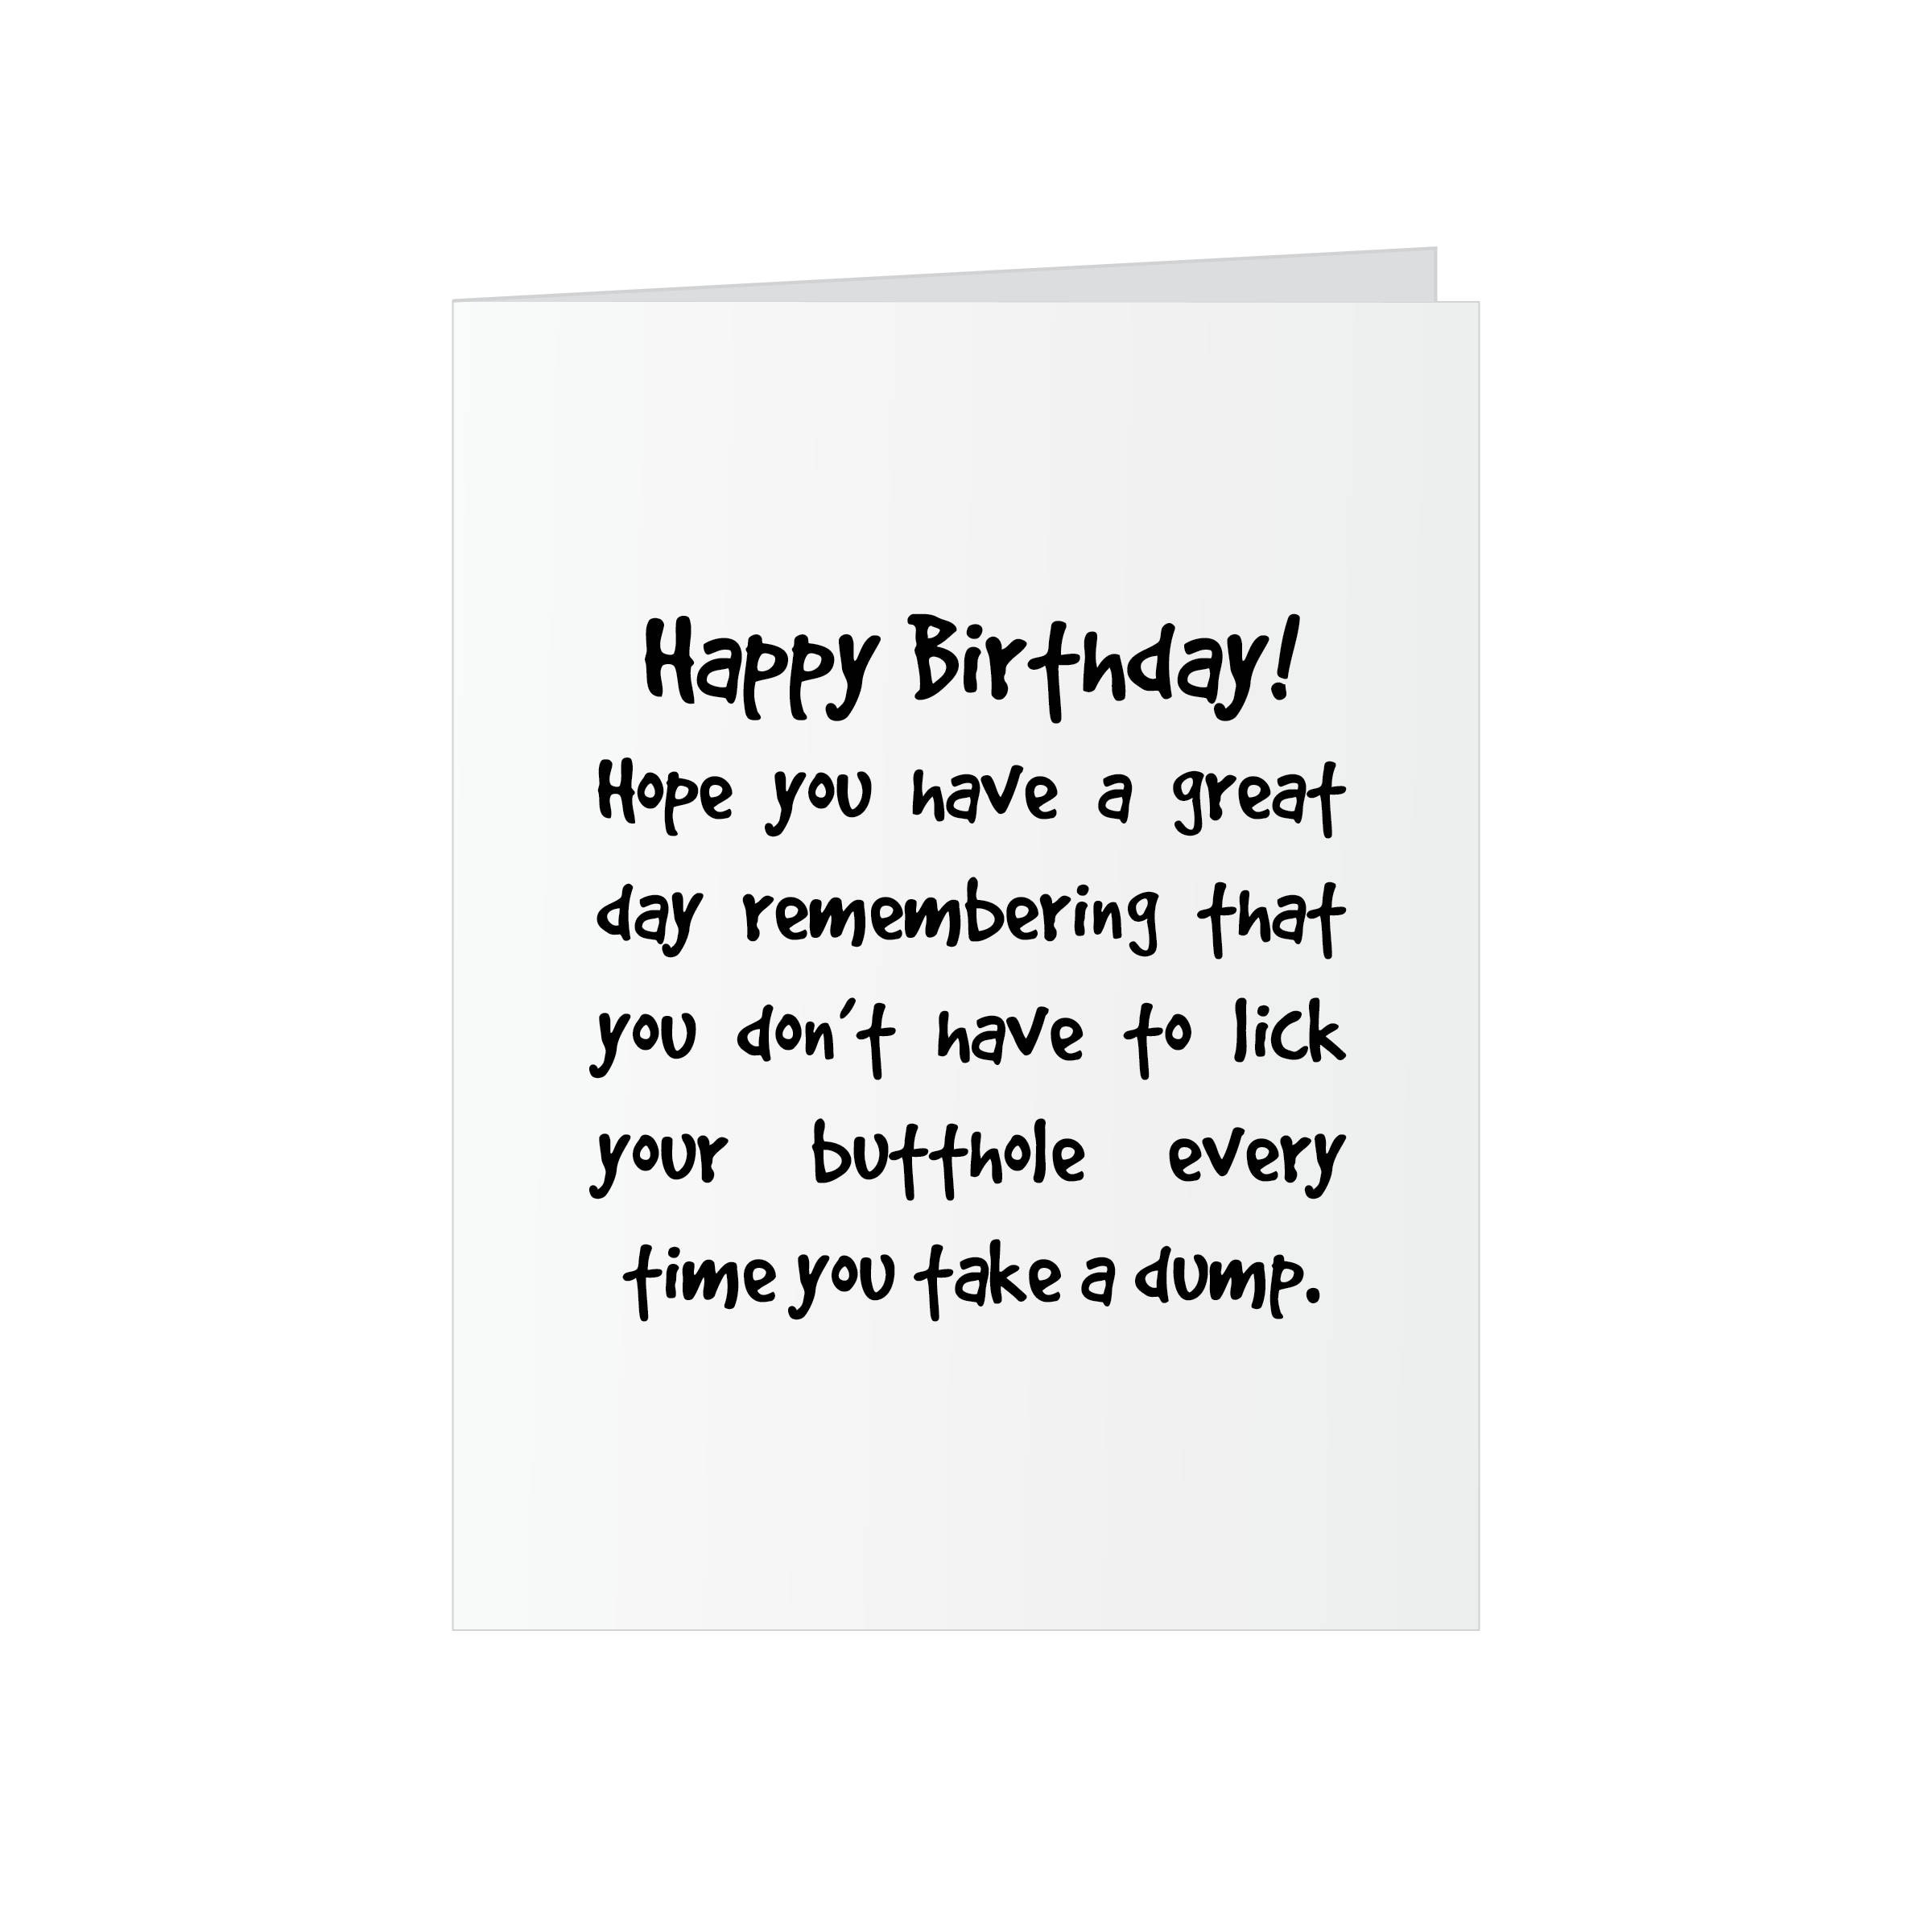 Funny birthday greeting card rude funny happy birthday for him funny birthday greeting card rude funny happy birthday for him or her mature kristyandbryce Images